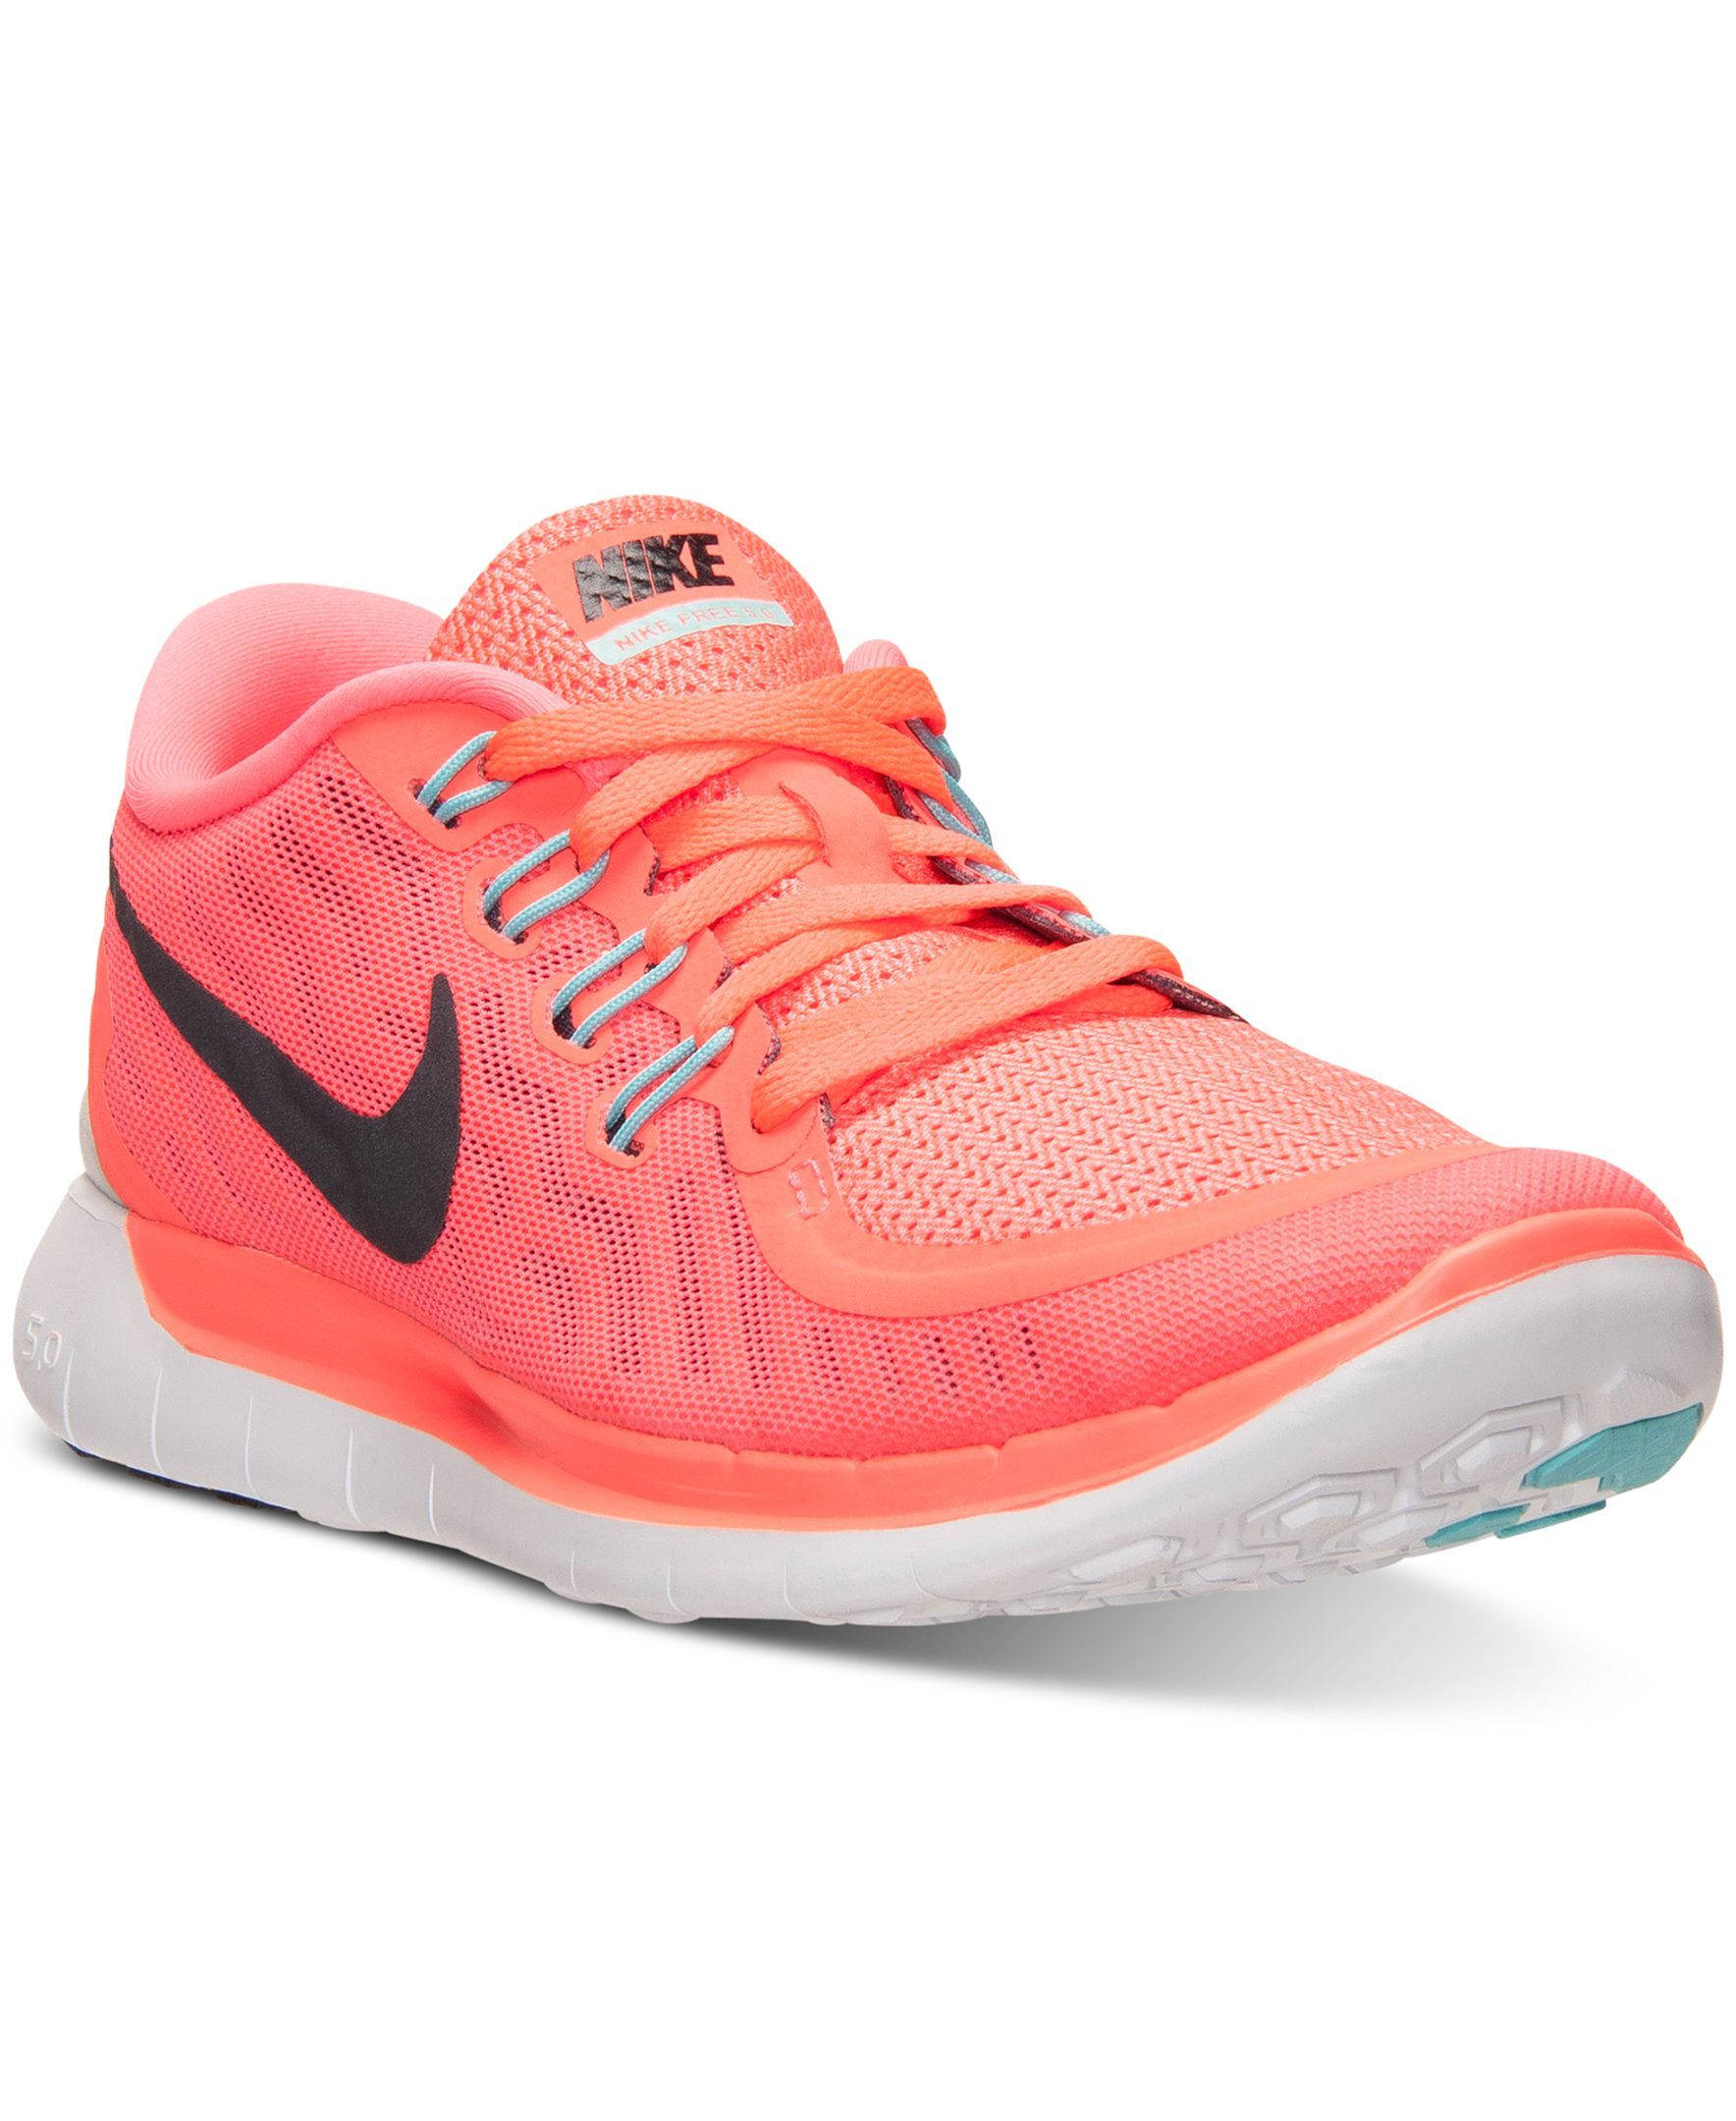 huge selection of 90870 86776 Nike Women s Free 5.0 Running Sneakers from Finish Line